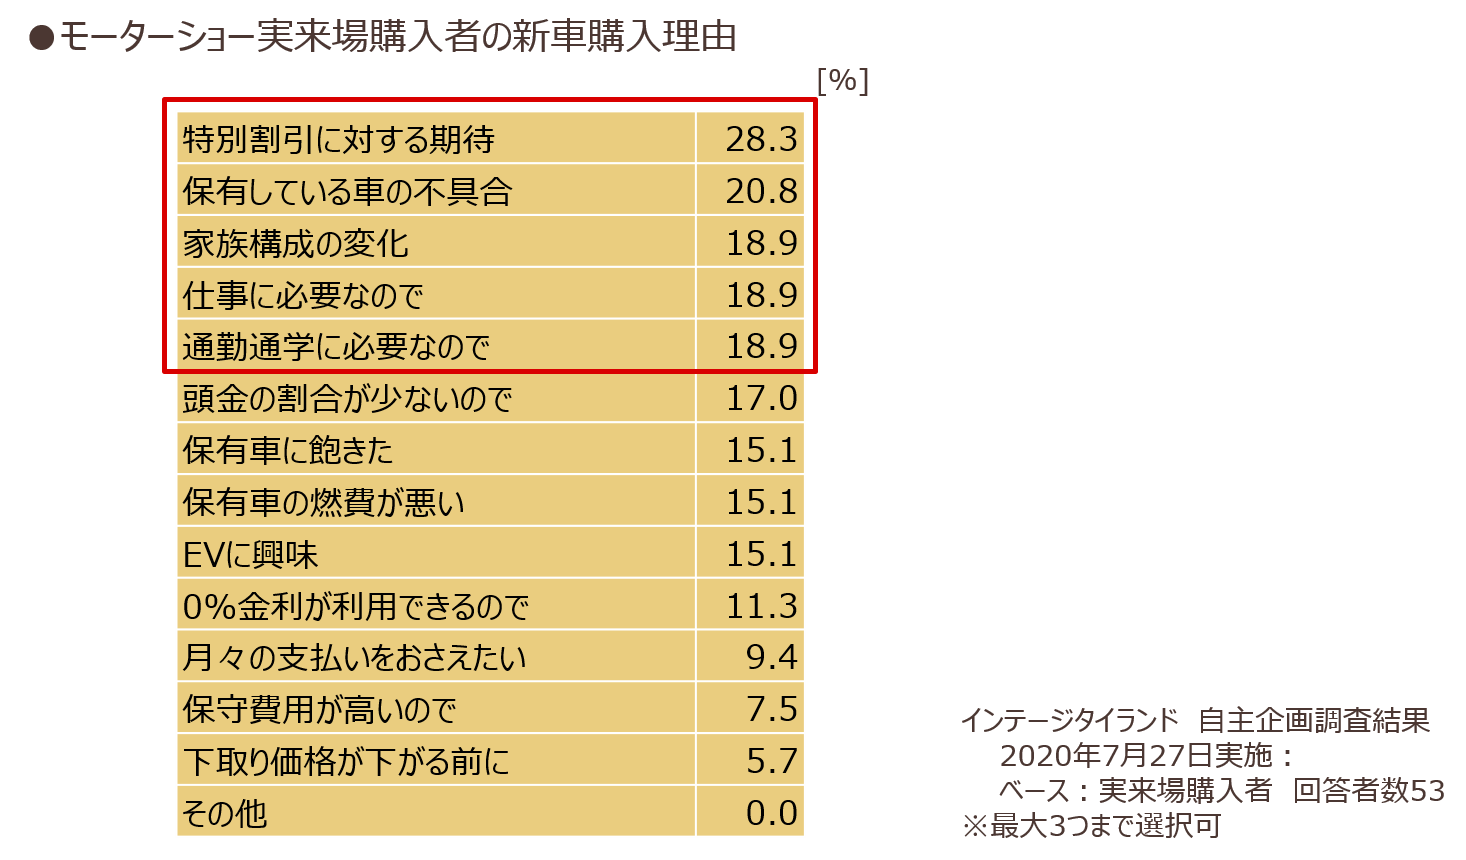 asia-carbusiness-3_03.png